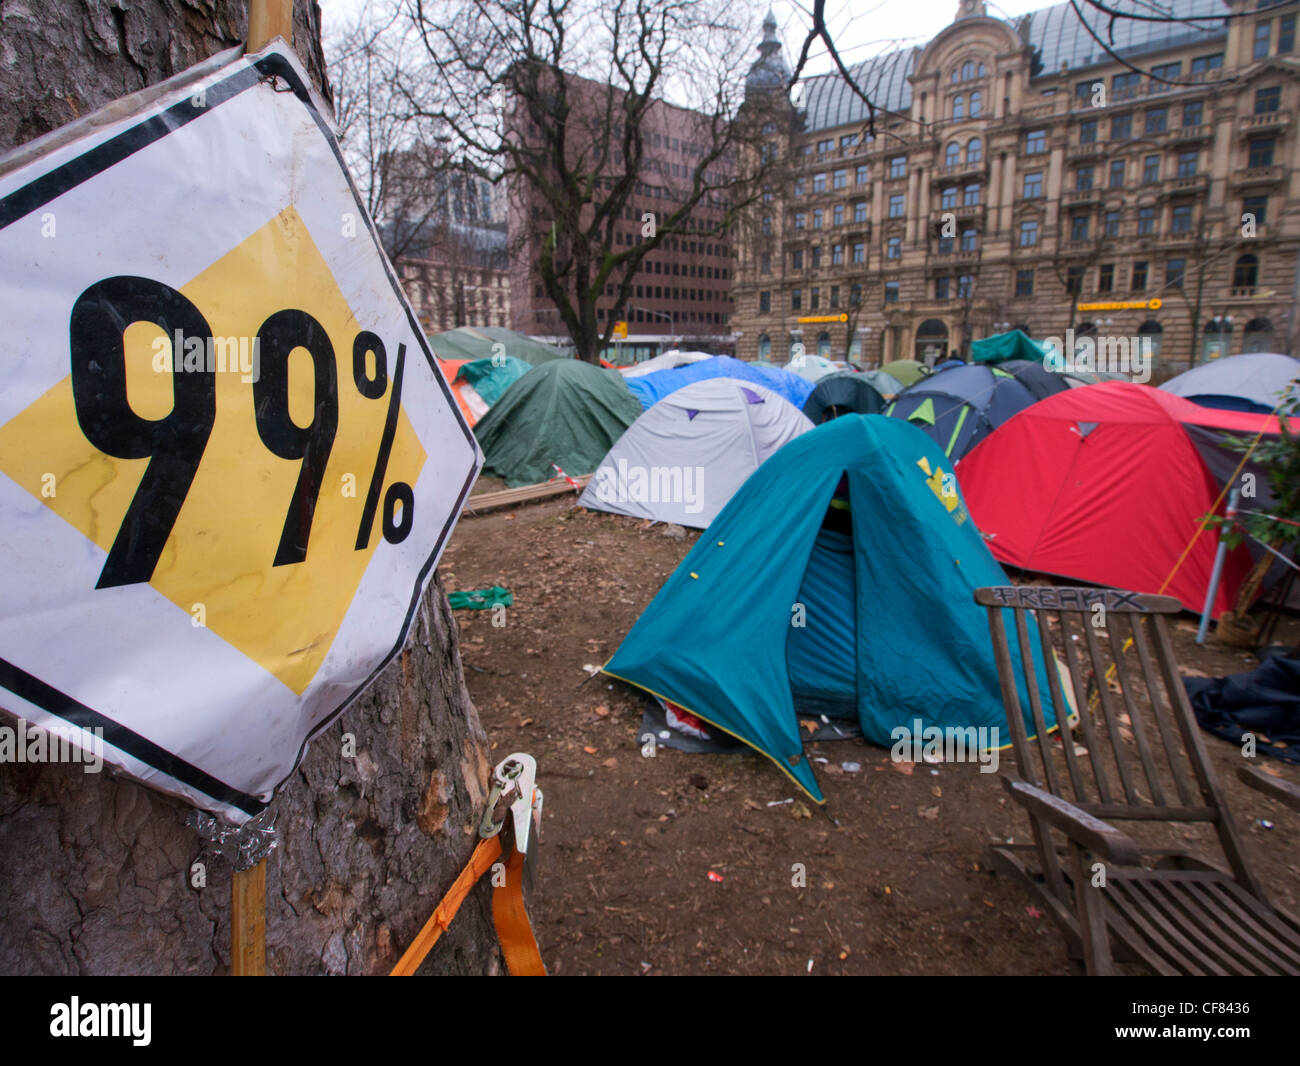 Site of Occupy Frankfurt protest site outside European Central Bank (ECB) headquarters in Frankfurt Germany - Stock Image